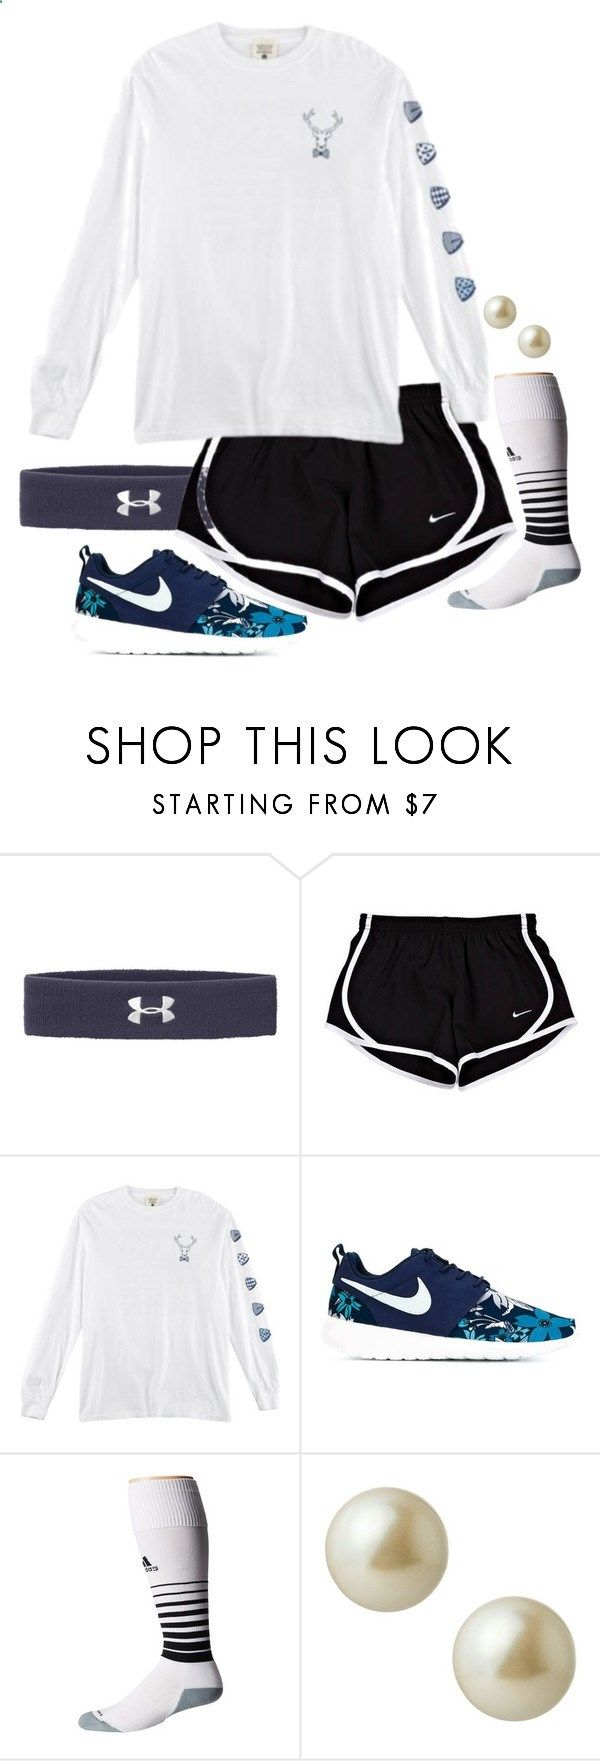 scored a goal in field hockey today!!! by prep-life-is-good-life ❤ liked on Polyvore featuring Under Armour, NIKE, adidas, Carolee, womens clothing, womens fashion, women, female, woman and misses